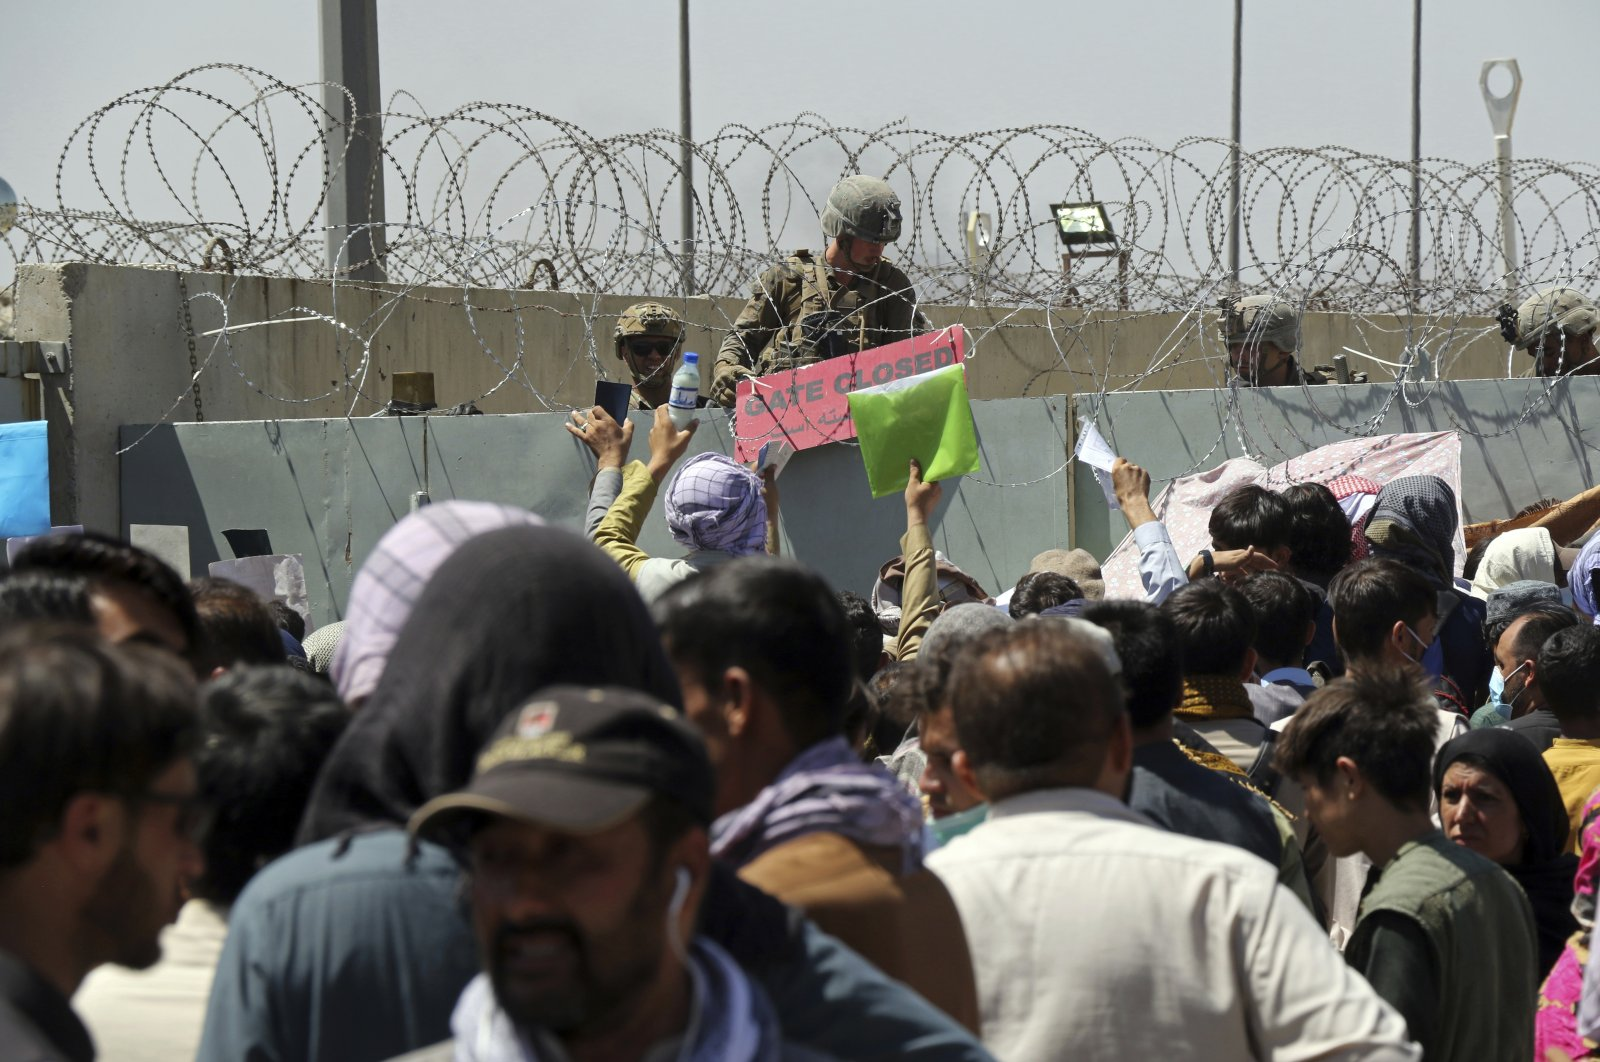 A U.S. soldier holds a sign indicating a gate is closed as hundreds of people gather, some holding documents, near an evacuation control checkpoint on the perimeter of Hamid Karzai International Airport, in Kabul, Afghanistan, Aug. 26, 2021. (AP Photo)